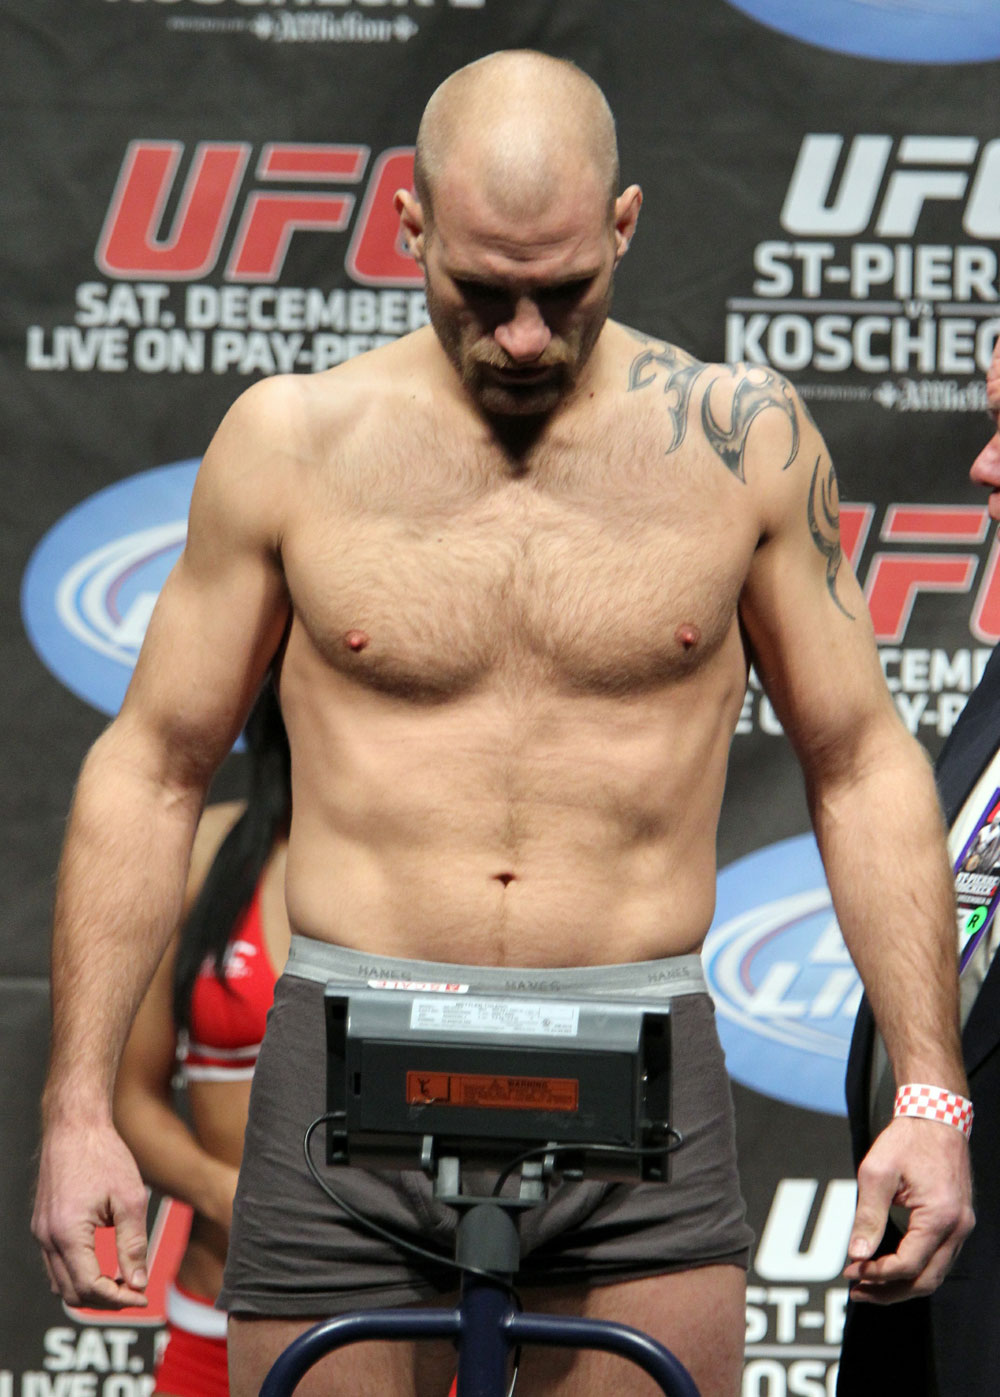 UFC 124 Weigh-in: Joe Doerksen weighs in at 185.5lbs.